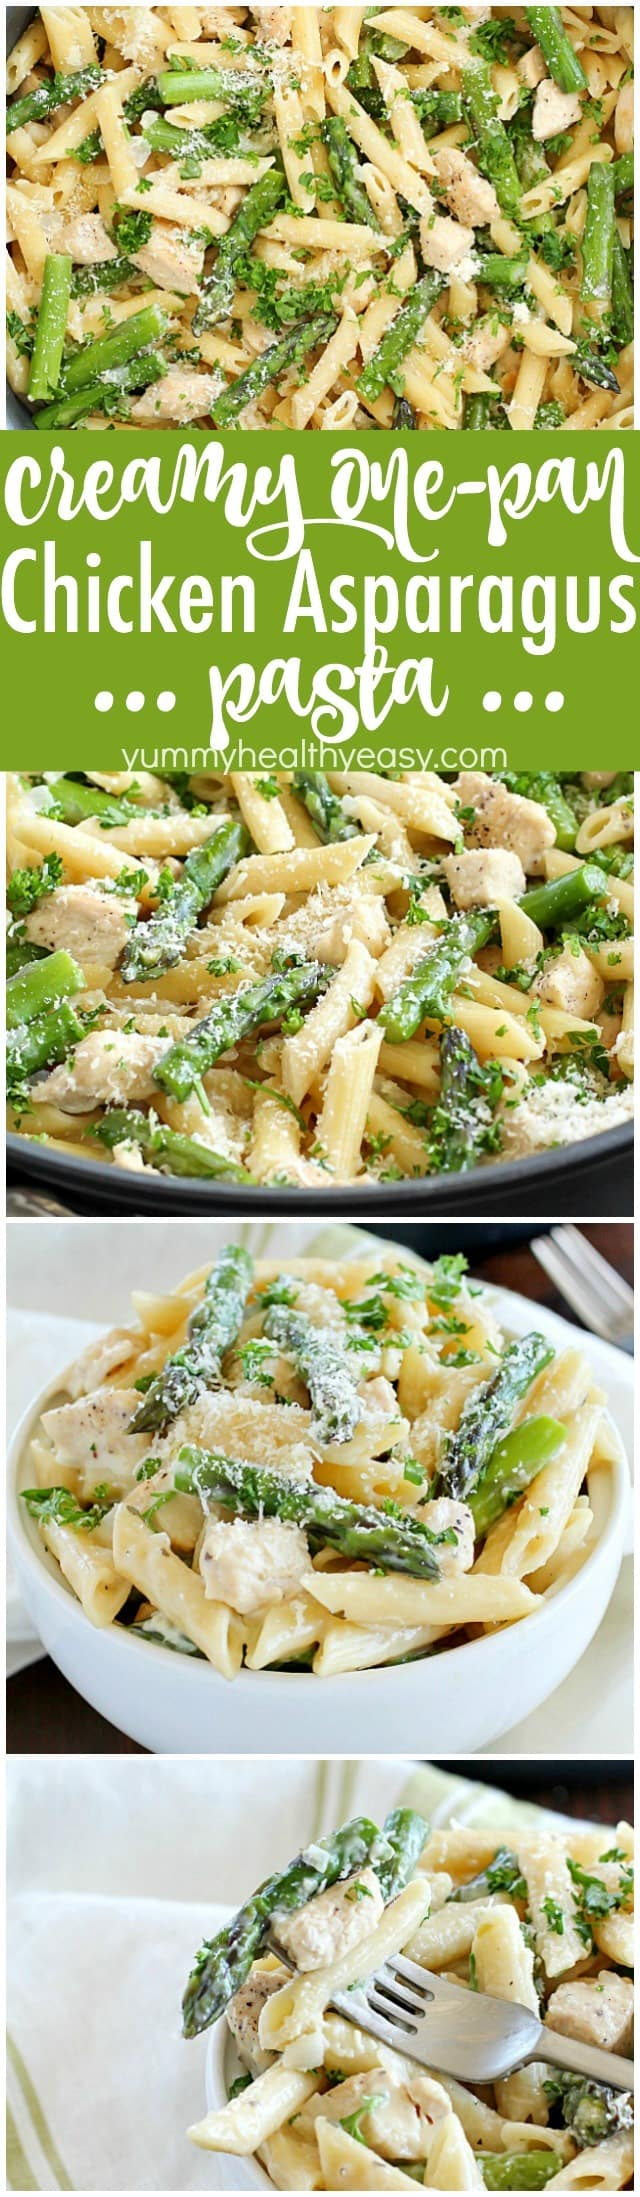 Creamy One-Pot Chicken Asparagus Pasta! Cooked in a creamy sauce and cooked from start to finish in only ONE pan. It's so simple and so easy plus the clean up is a breeze. It's perfect for spring and your busy schedule!